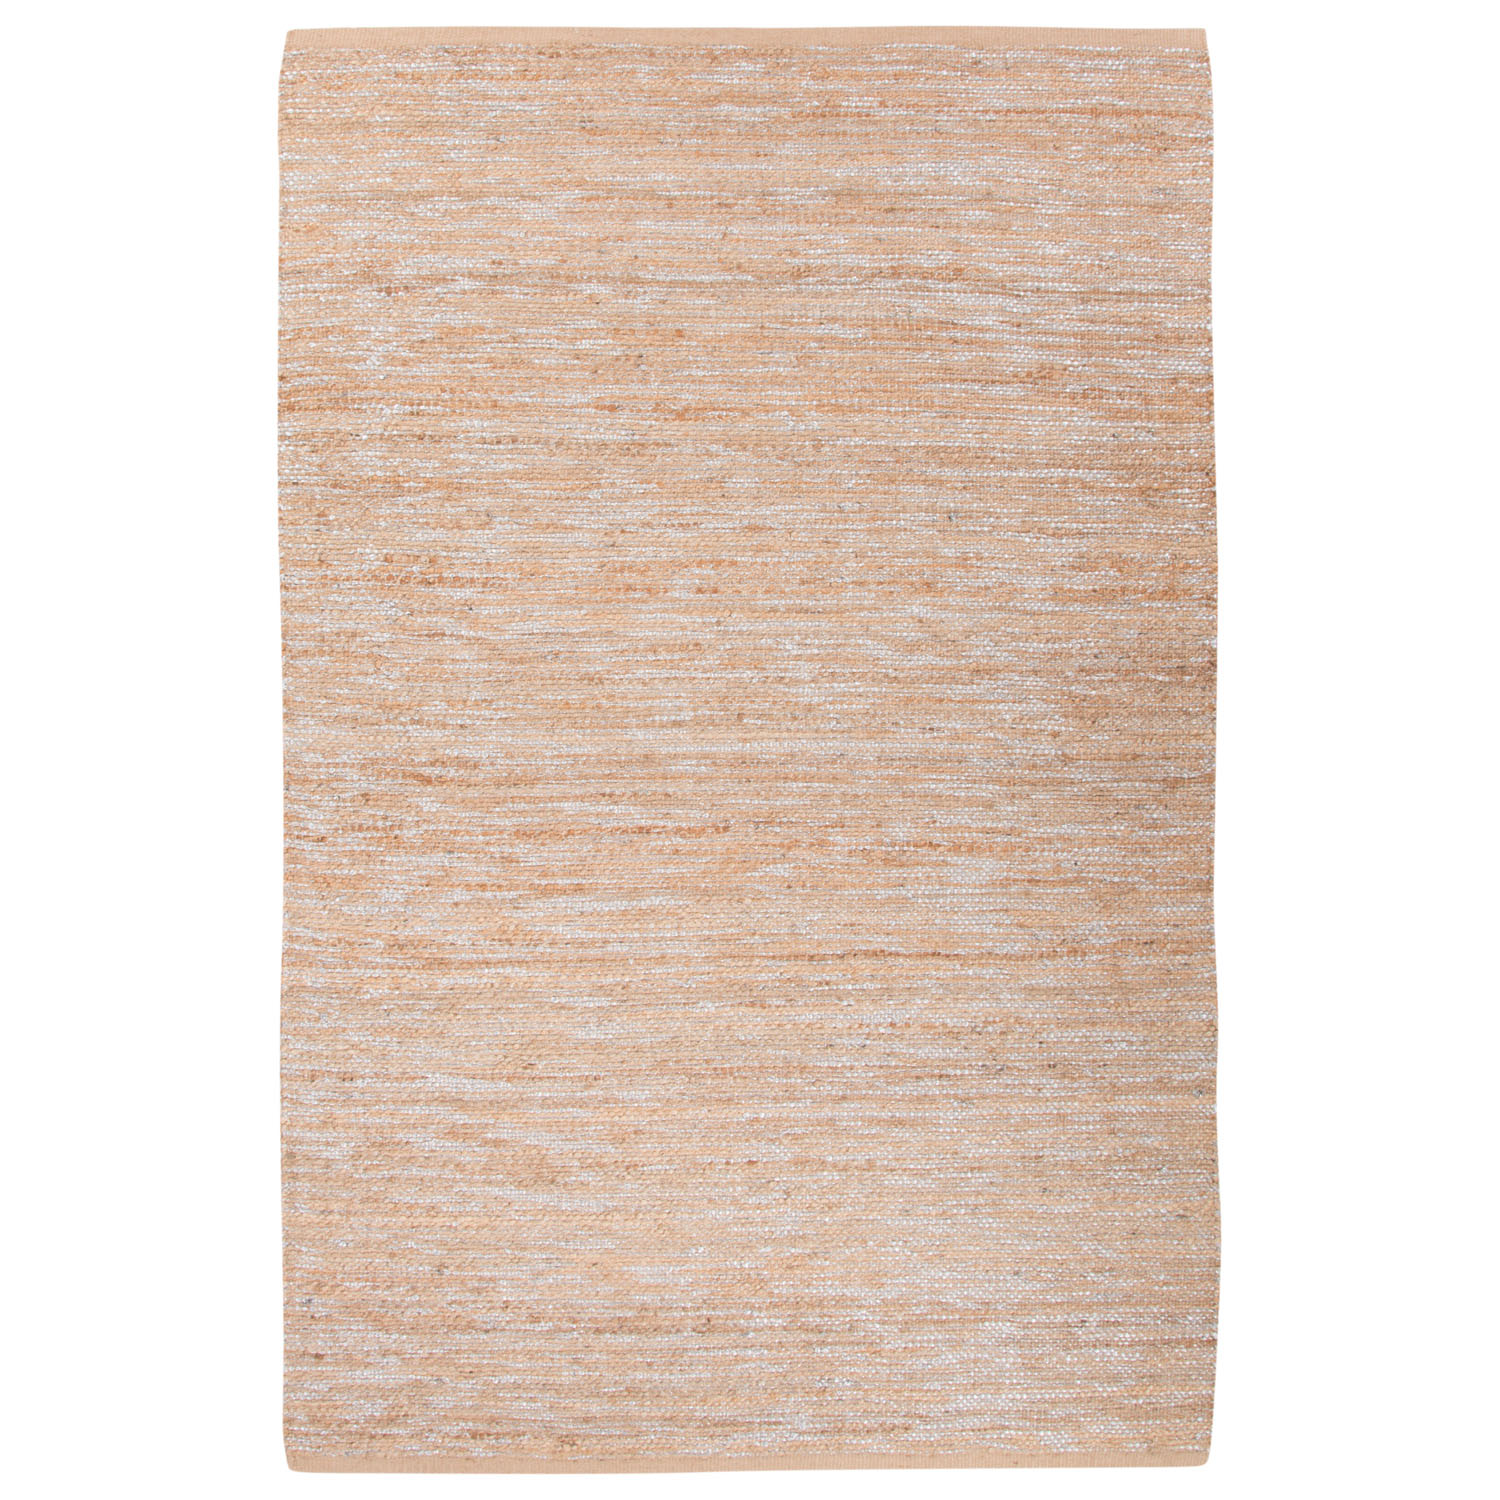 Nikki Chu By Jaipur Living Vega Natural Solid Beige/ Silver Area Rug